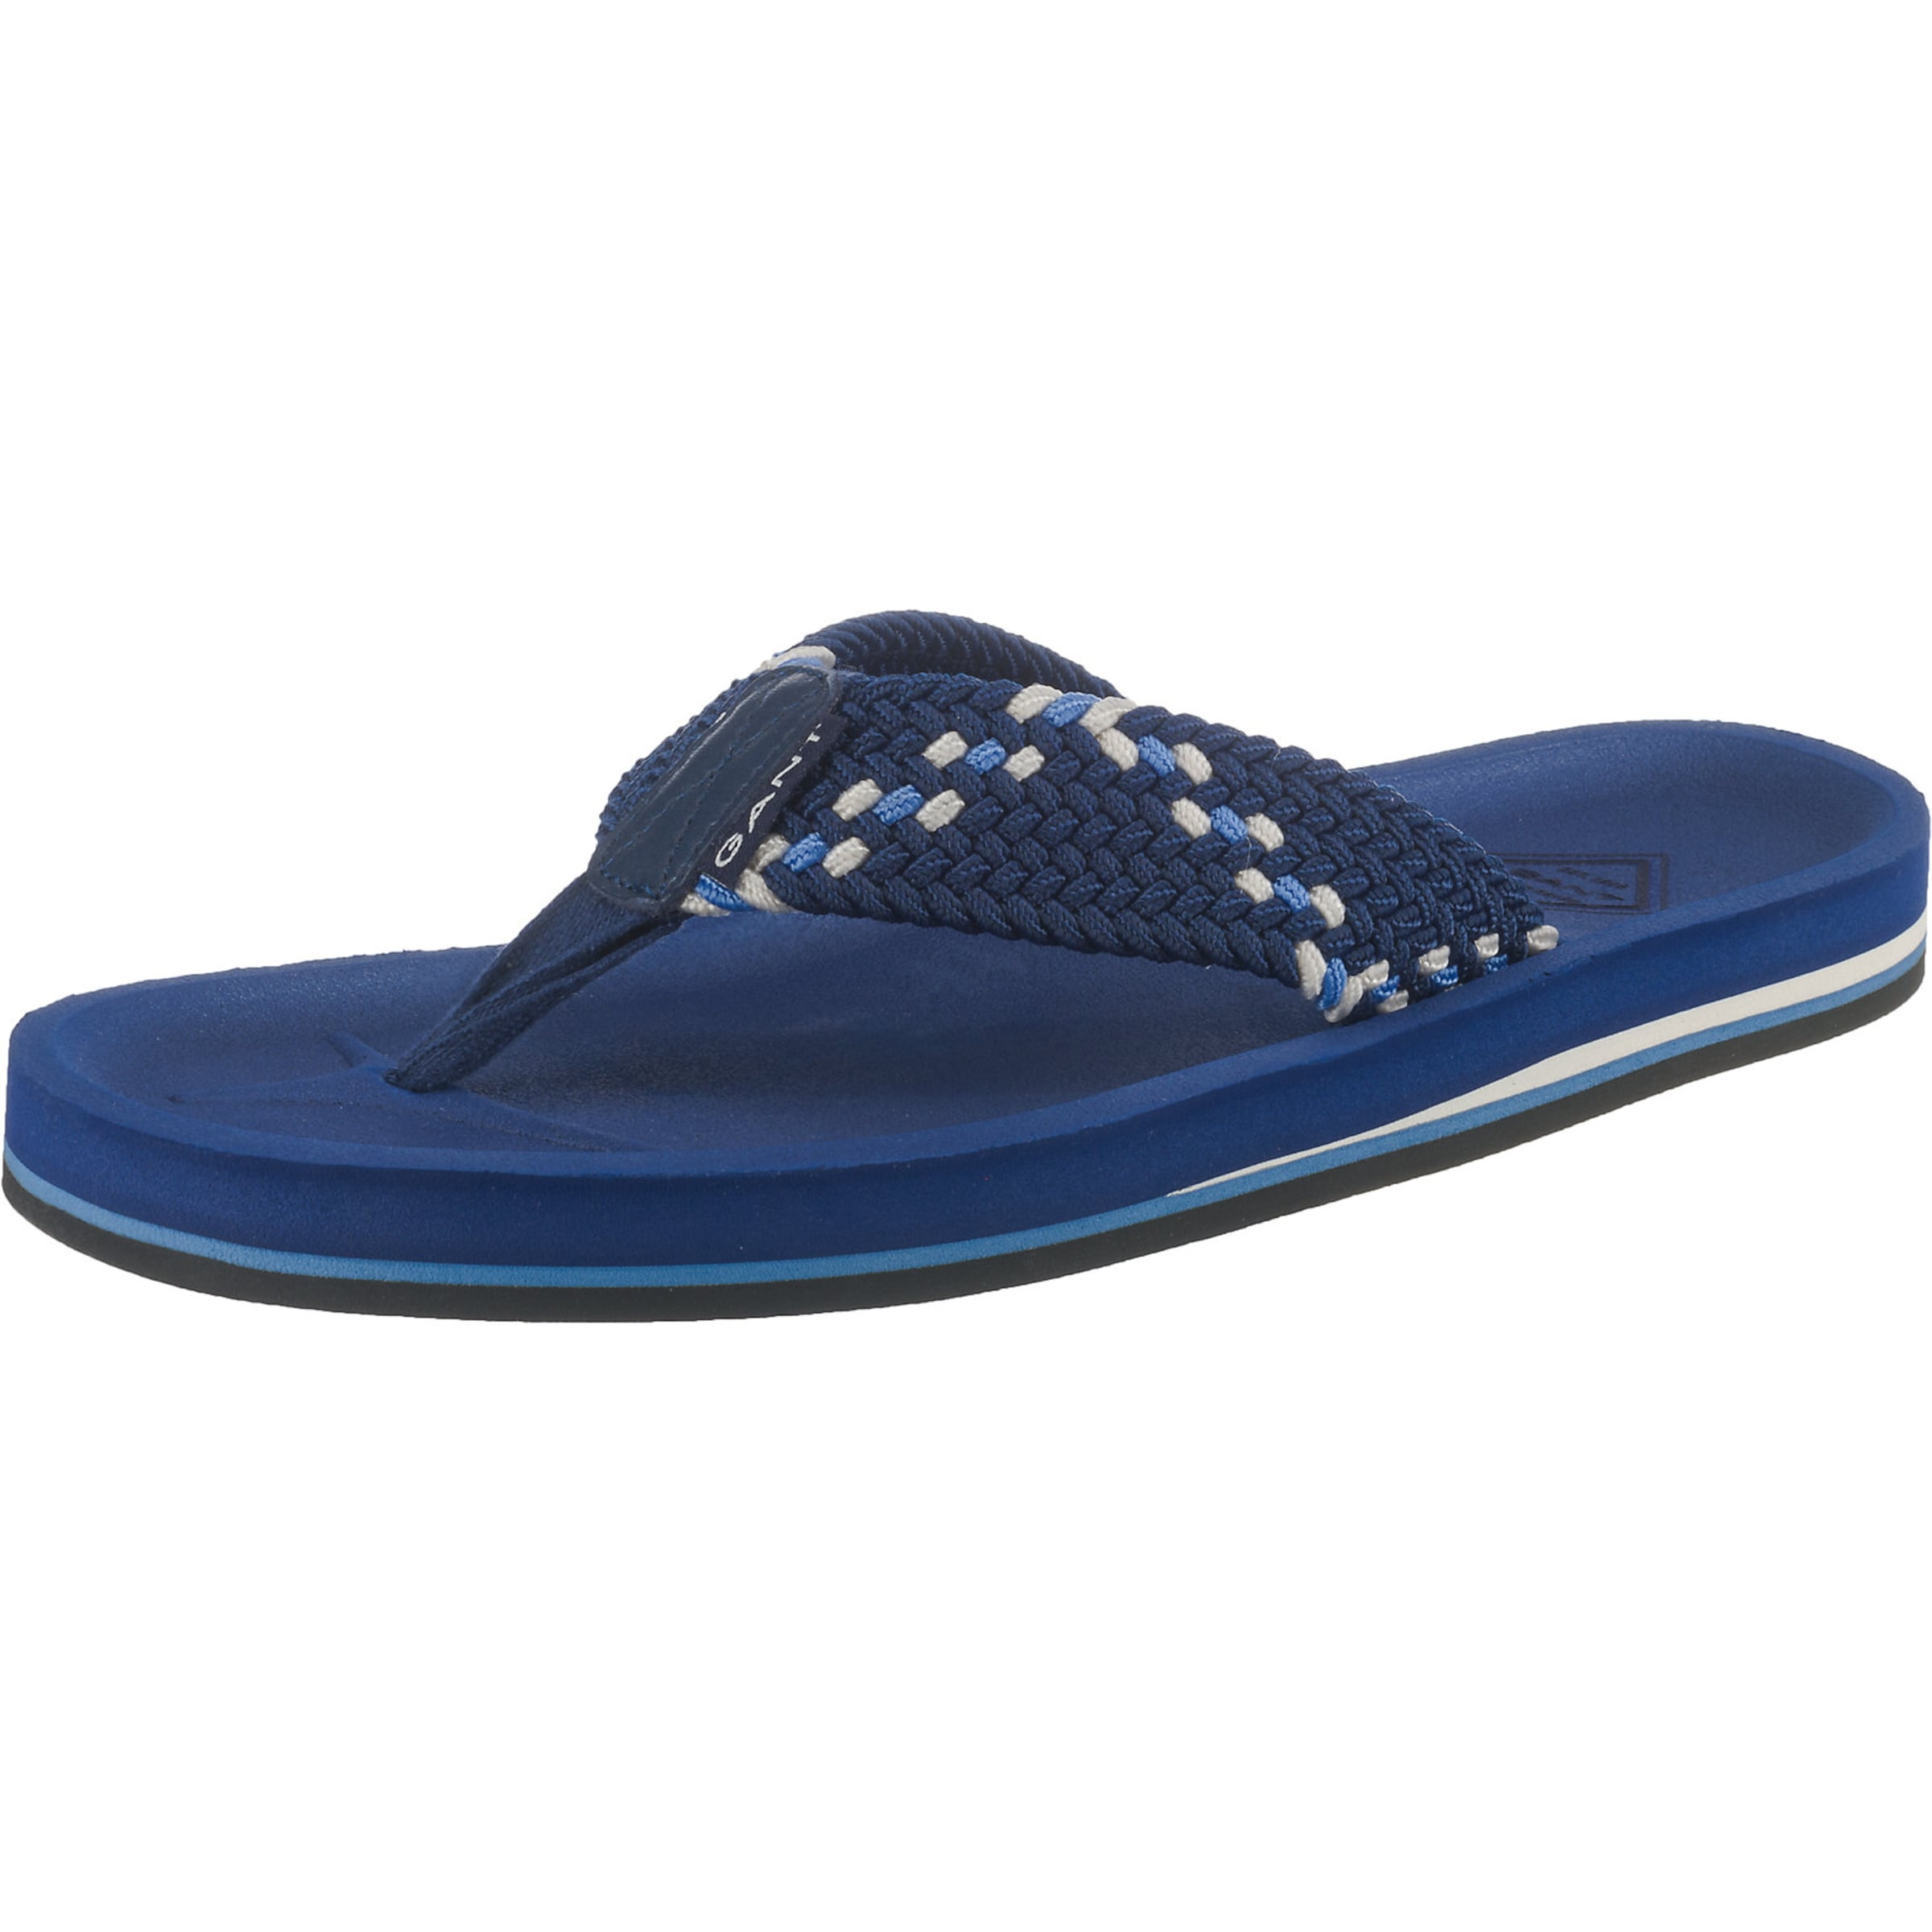 In Weiß 'breeze' Slipper DunkelblauRot Gant QCBtohdsrx